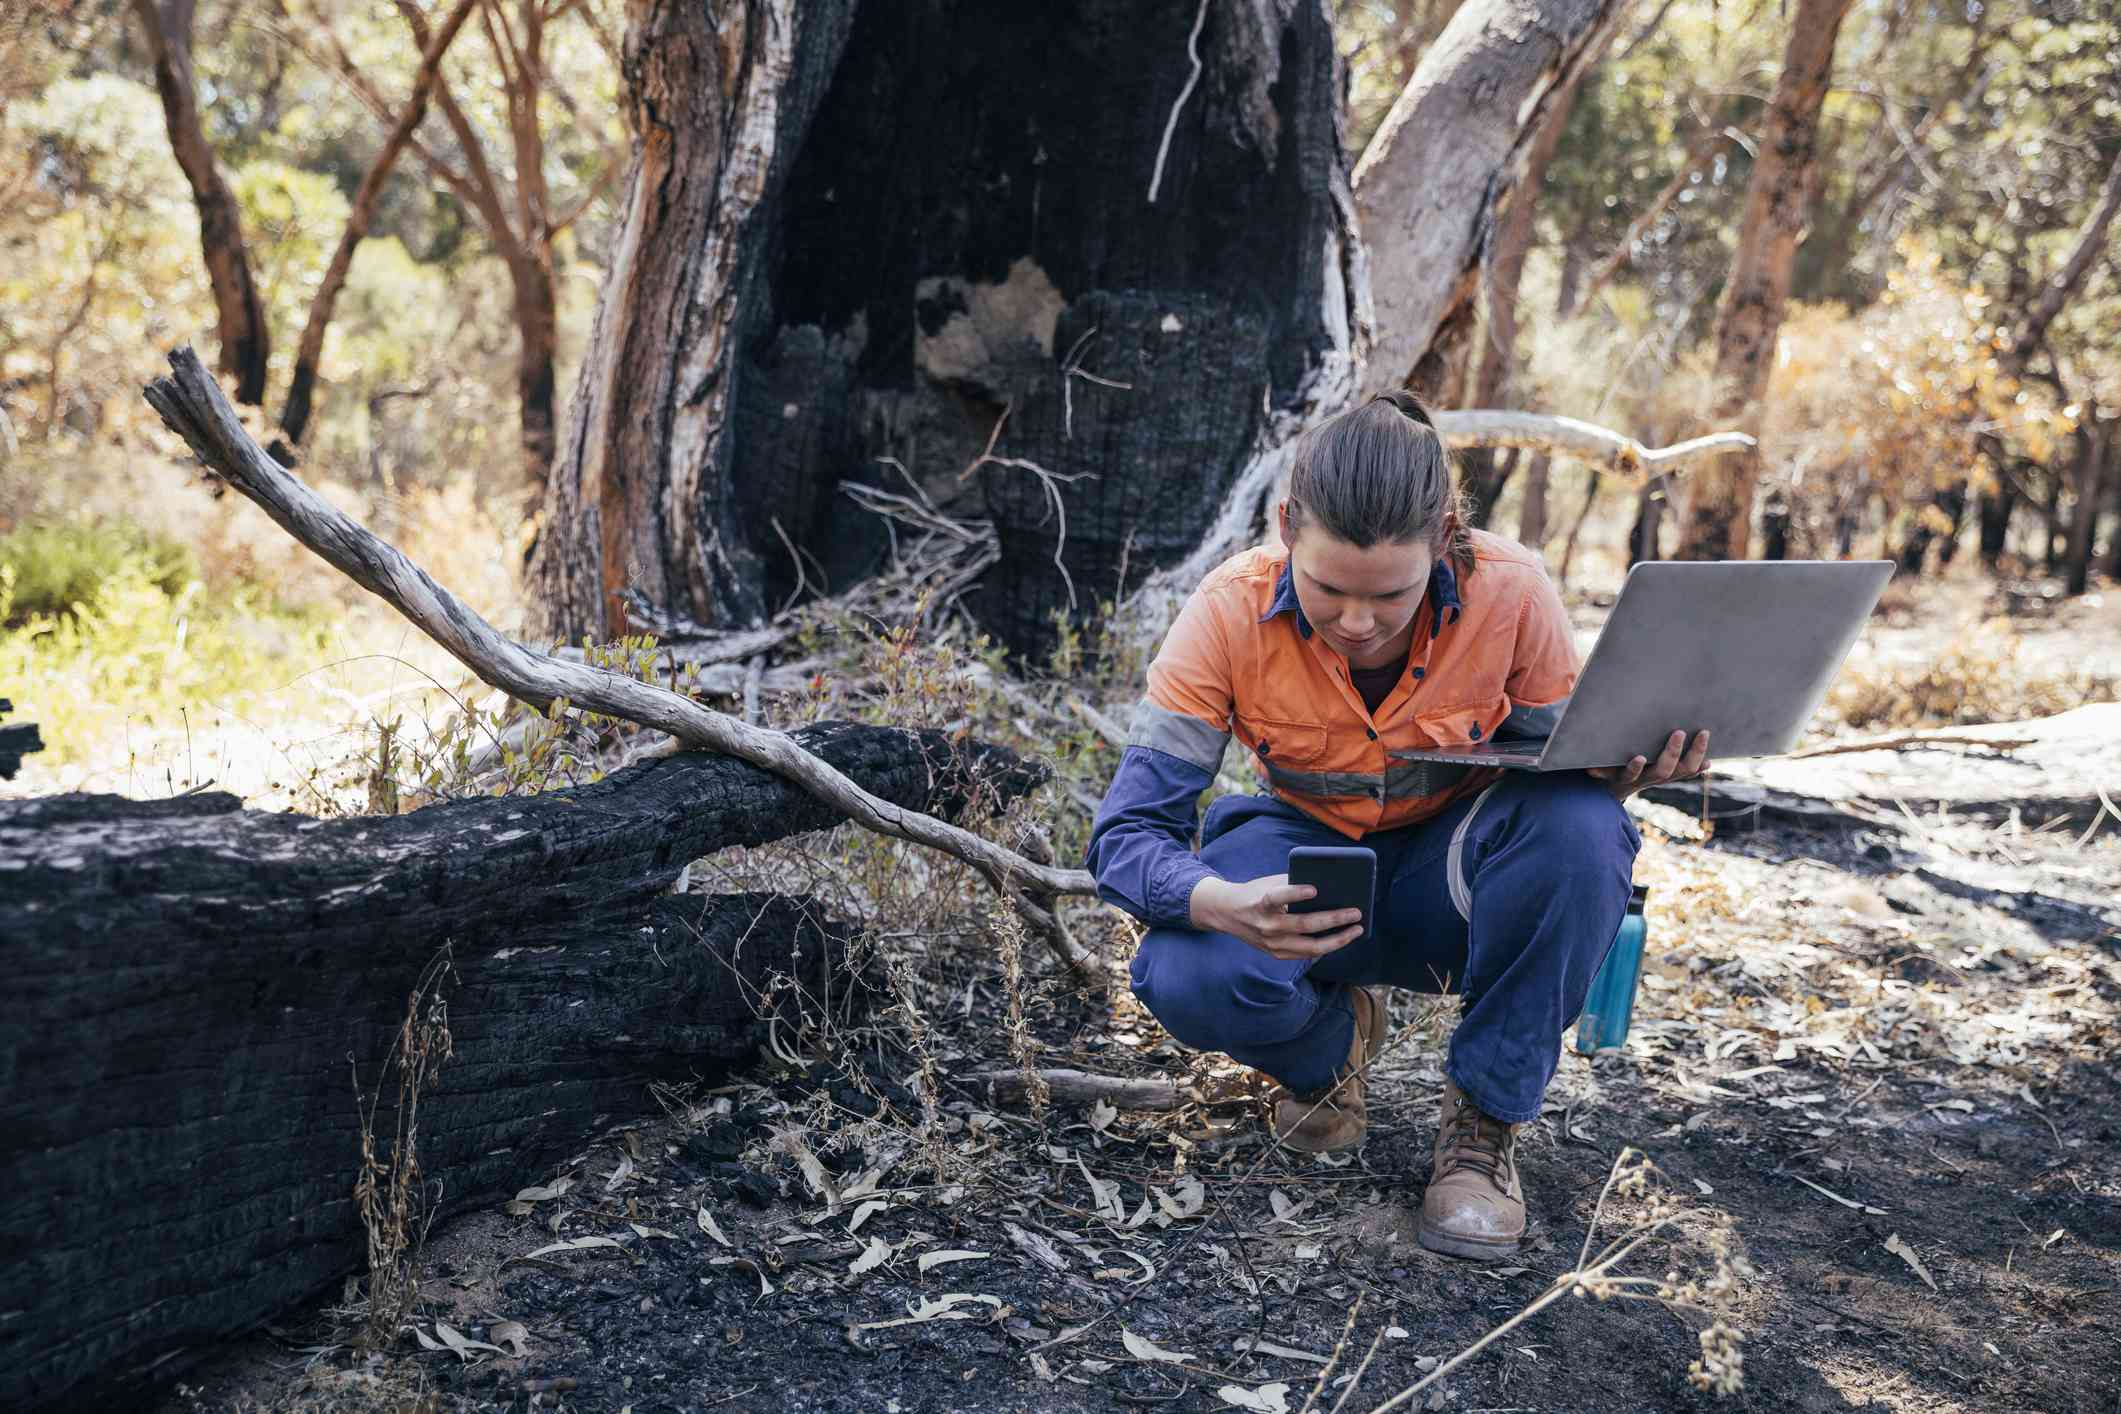 Someone collecting wildfire damage data with a computer and smartphone.